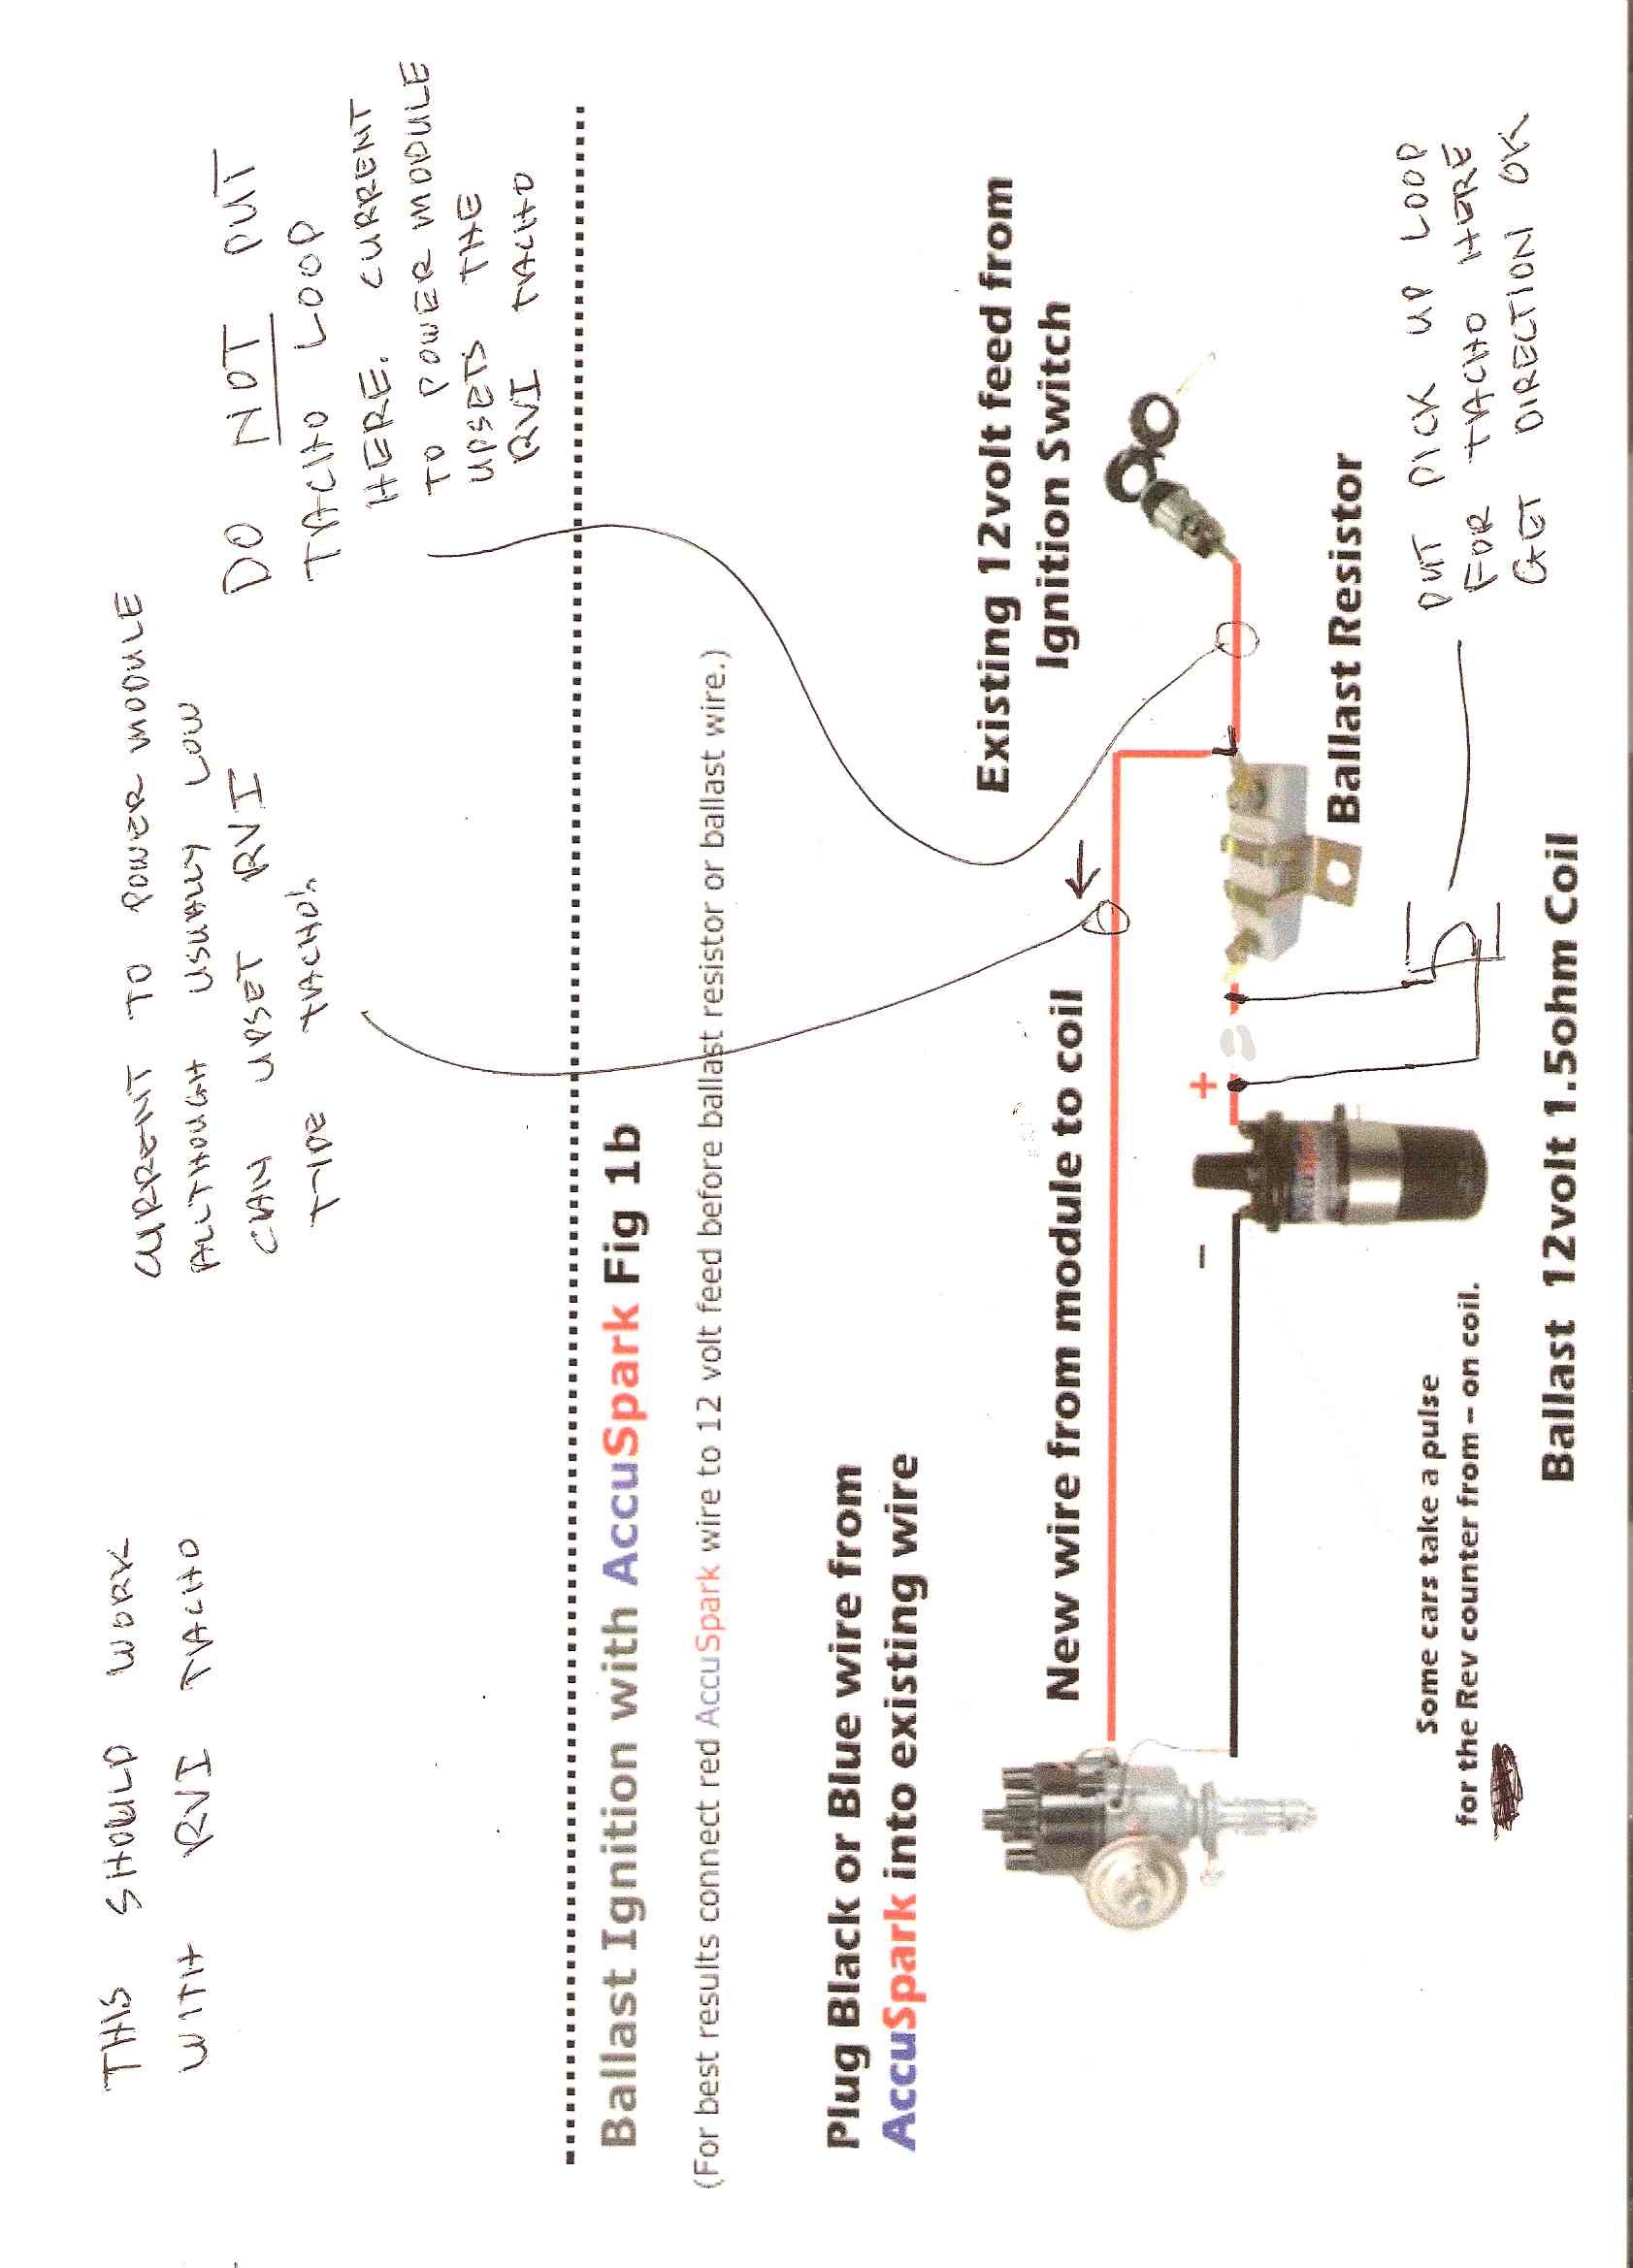 Accuspark Electronic Ignition Wiring Diagram Free Download Mallory Distributor No Tacho After And Ballast Resistor Electrical